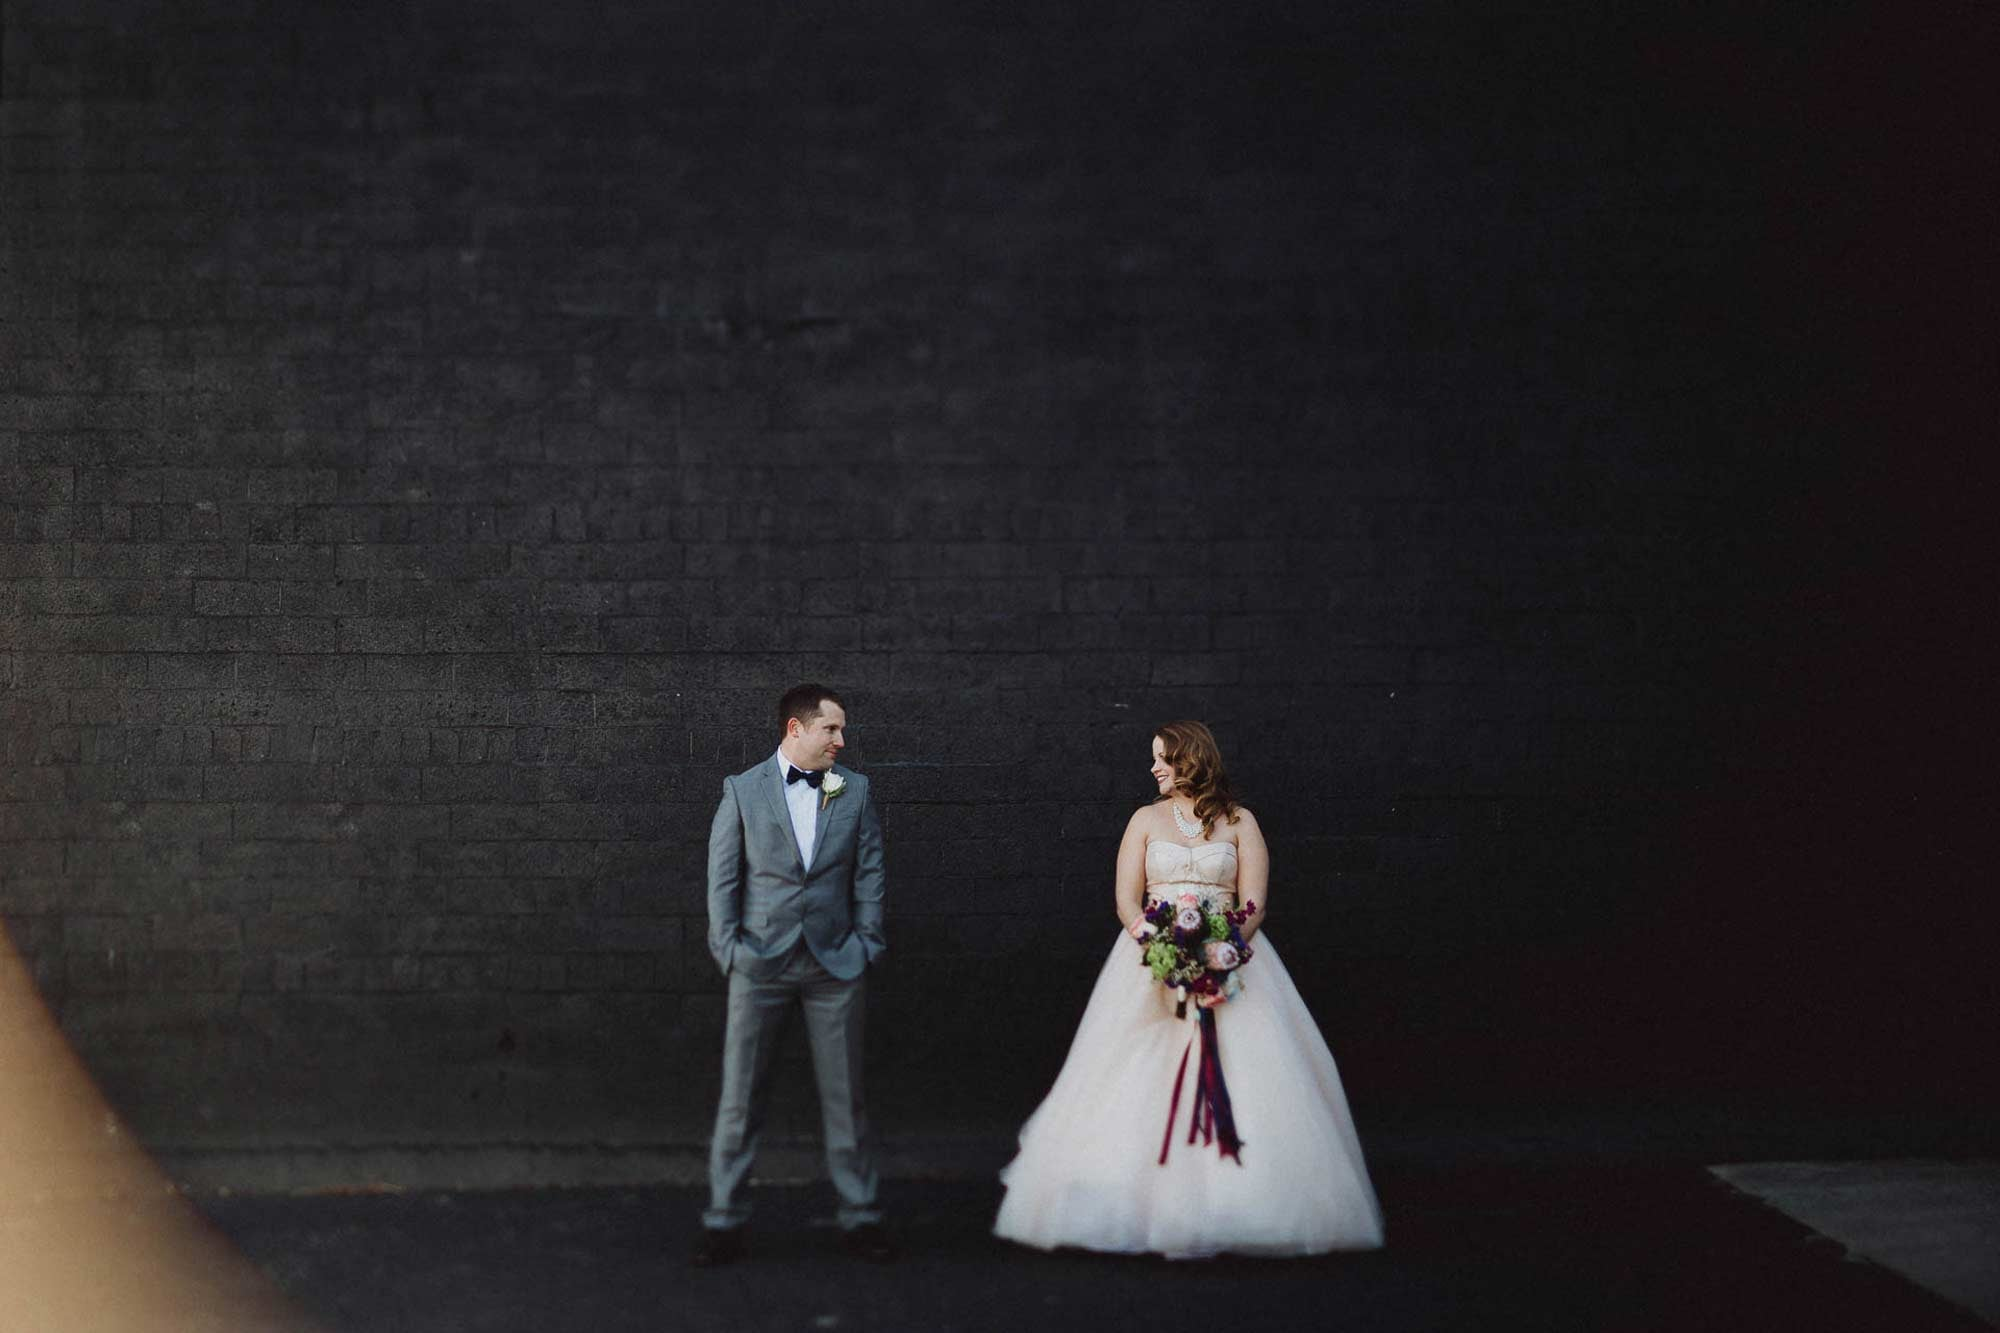 Stephanie + Lyle's Downtown Dayton Wedding